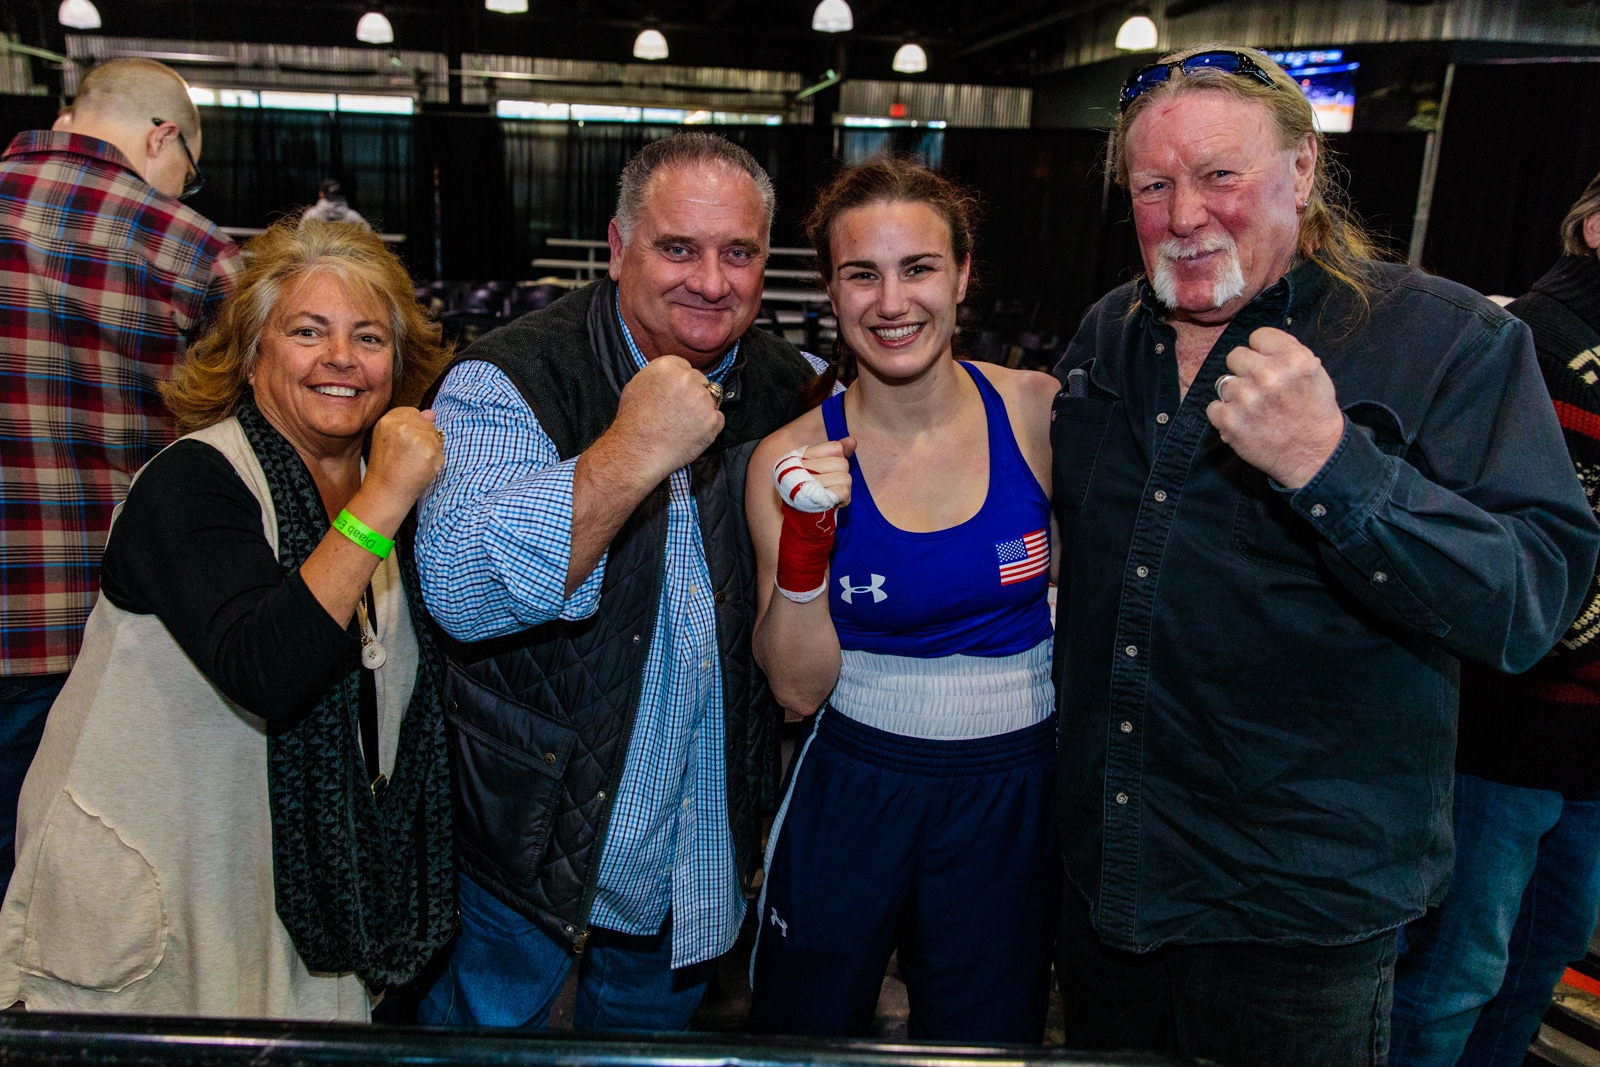 Smiles at Buffalo Golden Gloves Semifinals